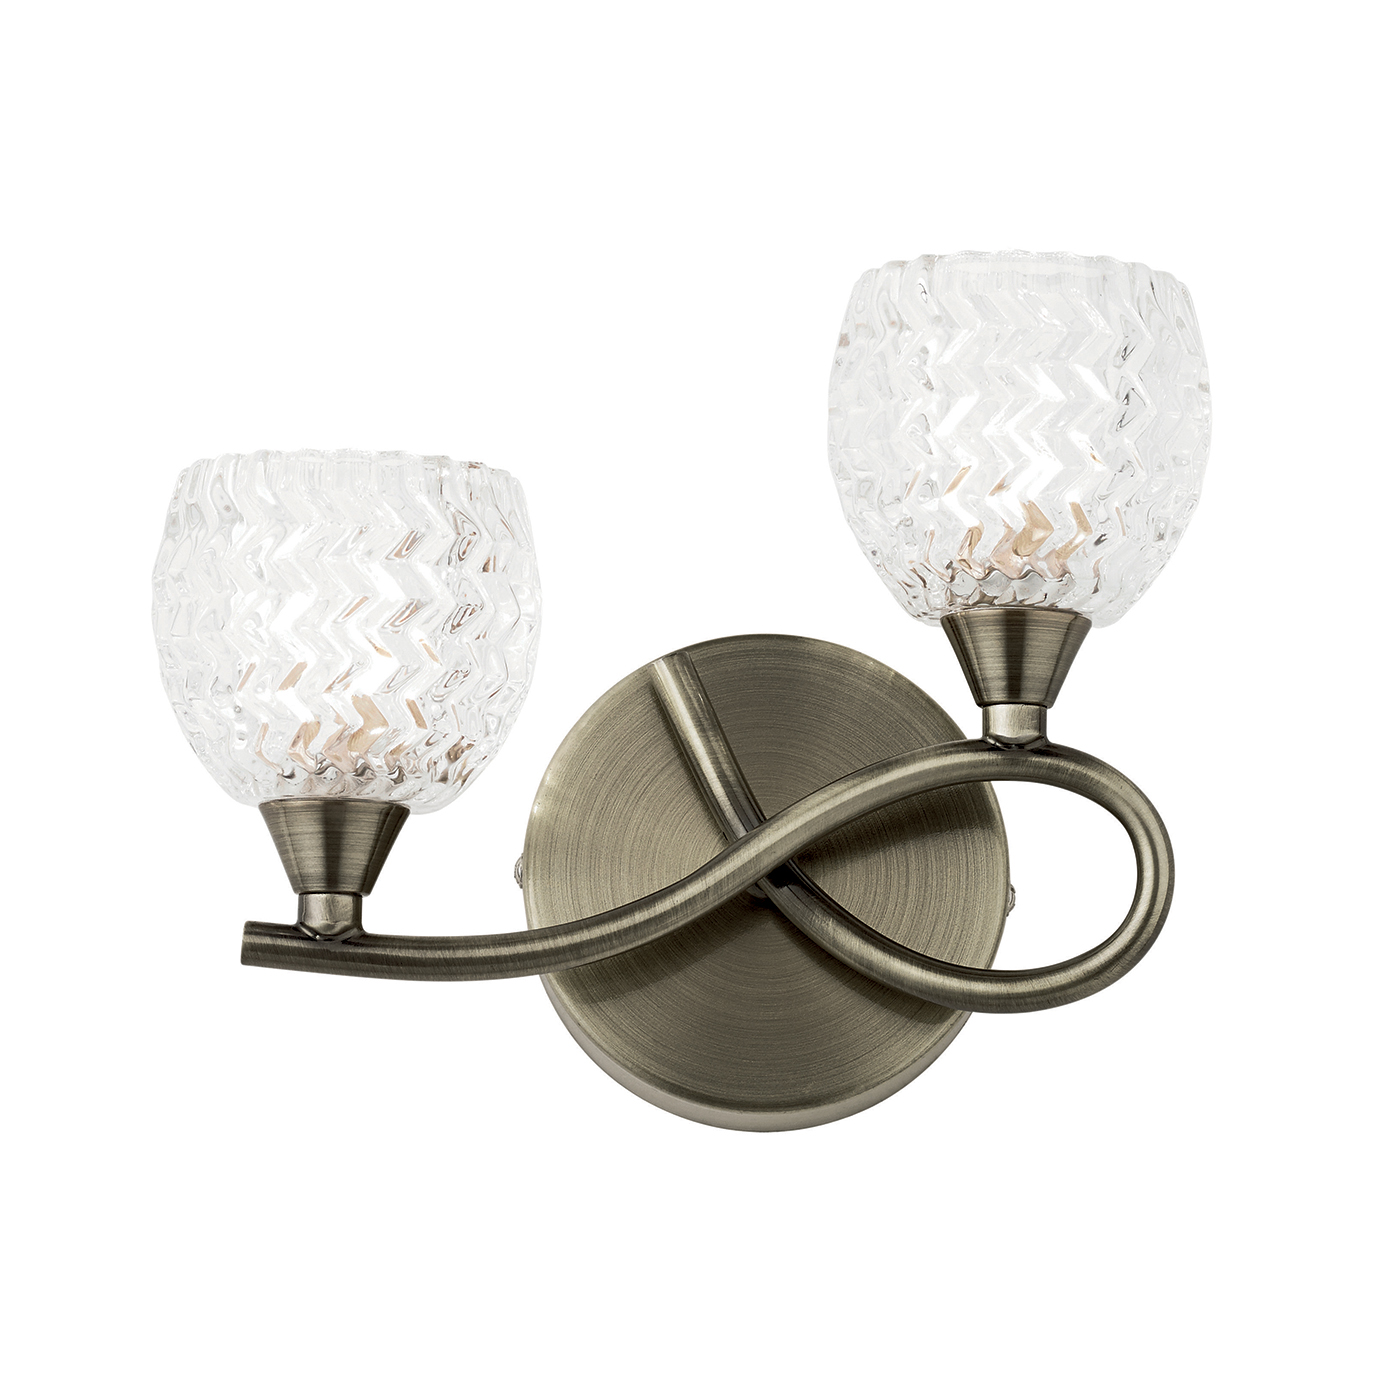 Endon Boyer 2lt right wall light 33W Antique brass clear glass with pattern Thumbnail 1